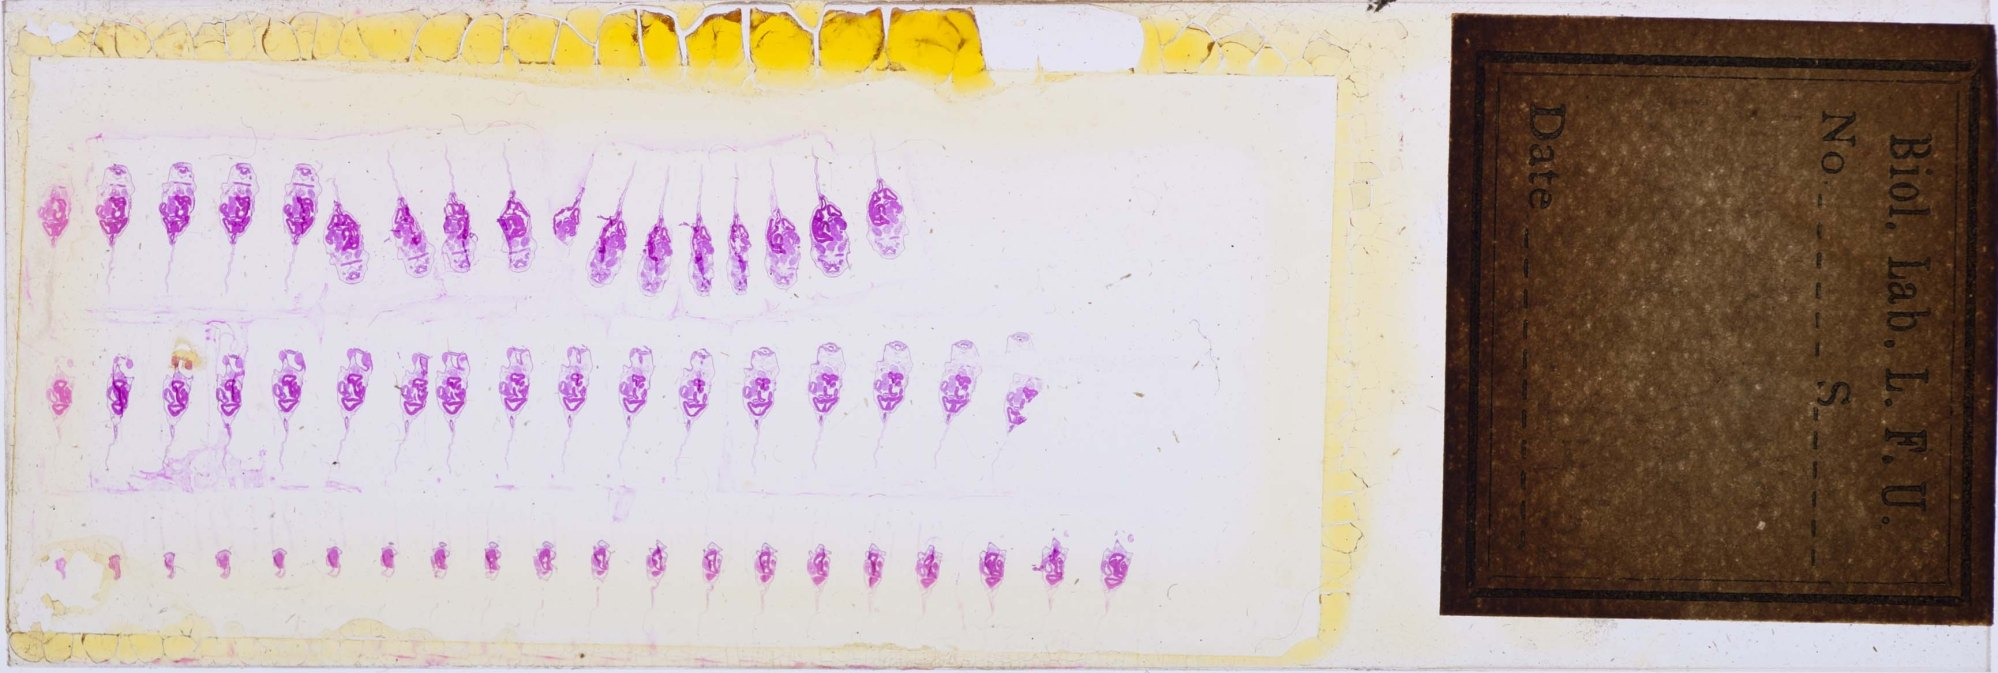 Colored image of a microscope slide of frontal sect. of ext. gill